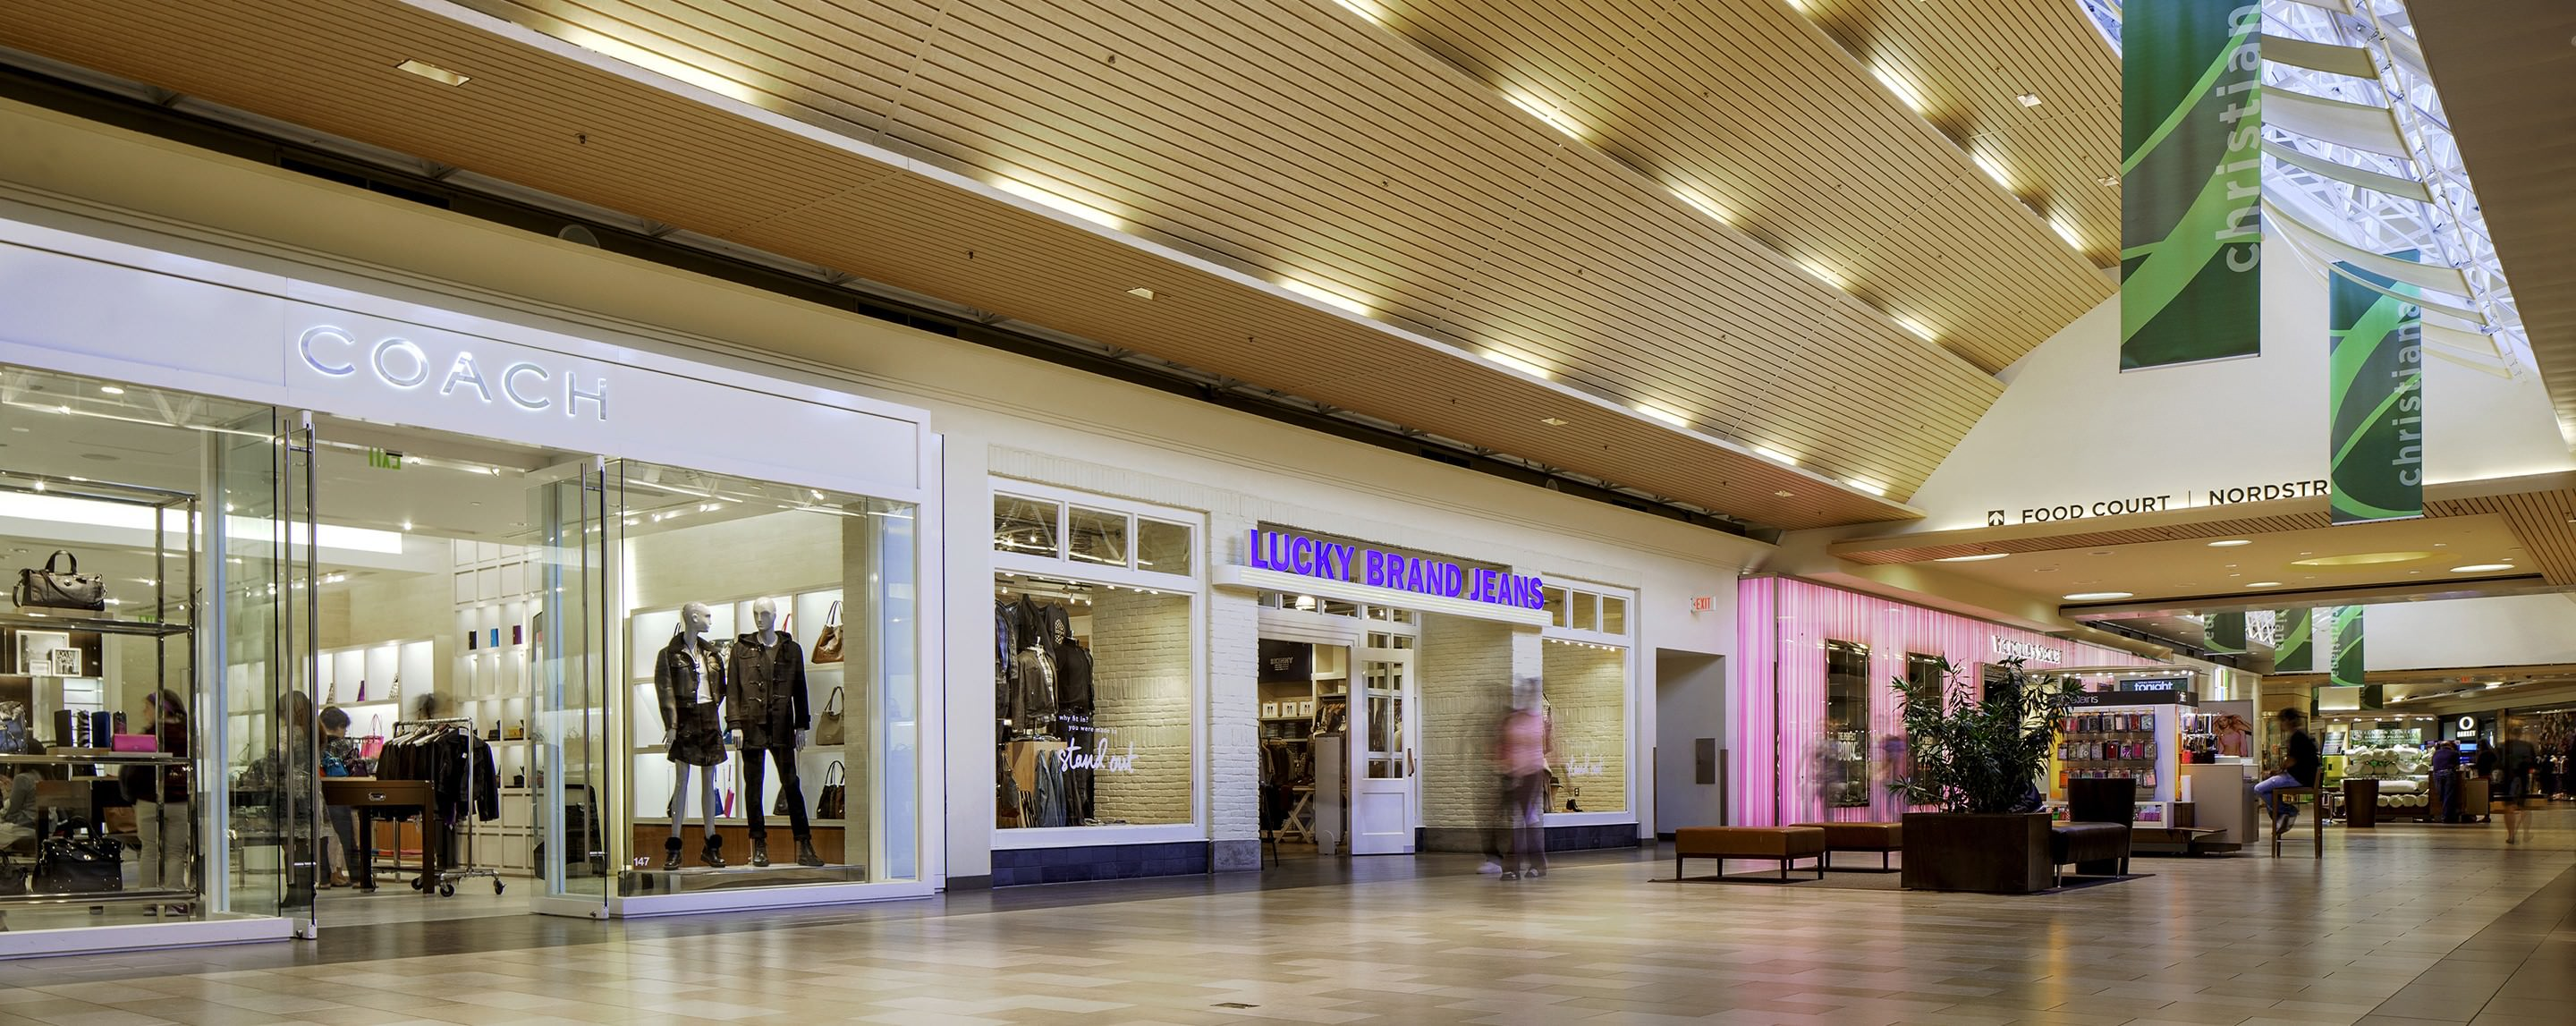 People walk past the Coach and Lucky Brand stores in the hall of an indoor mall.